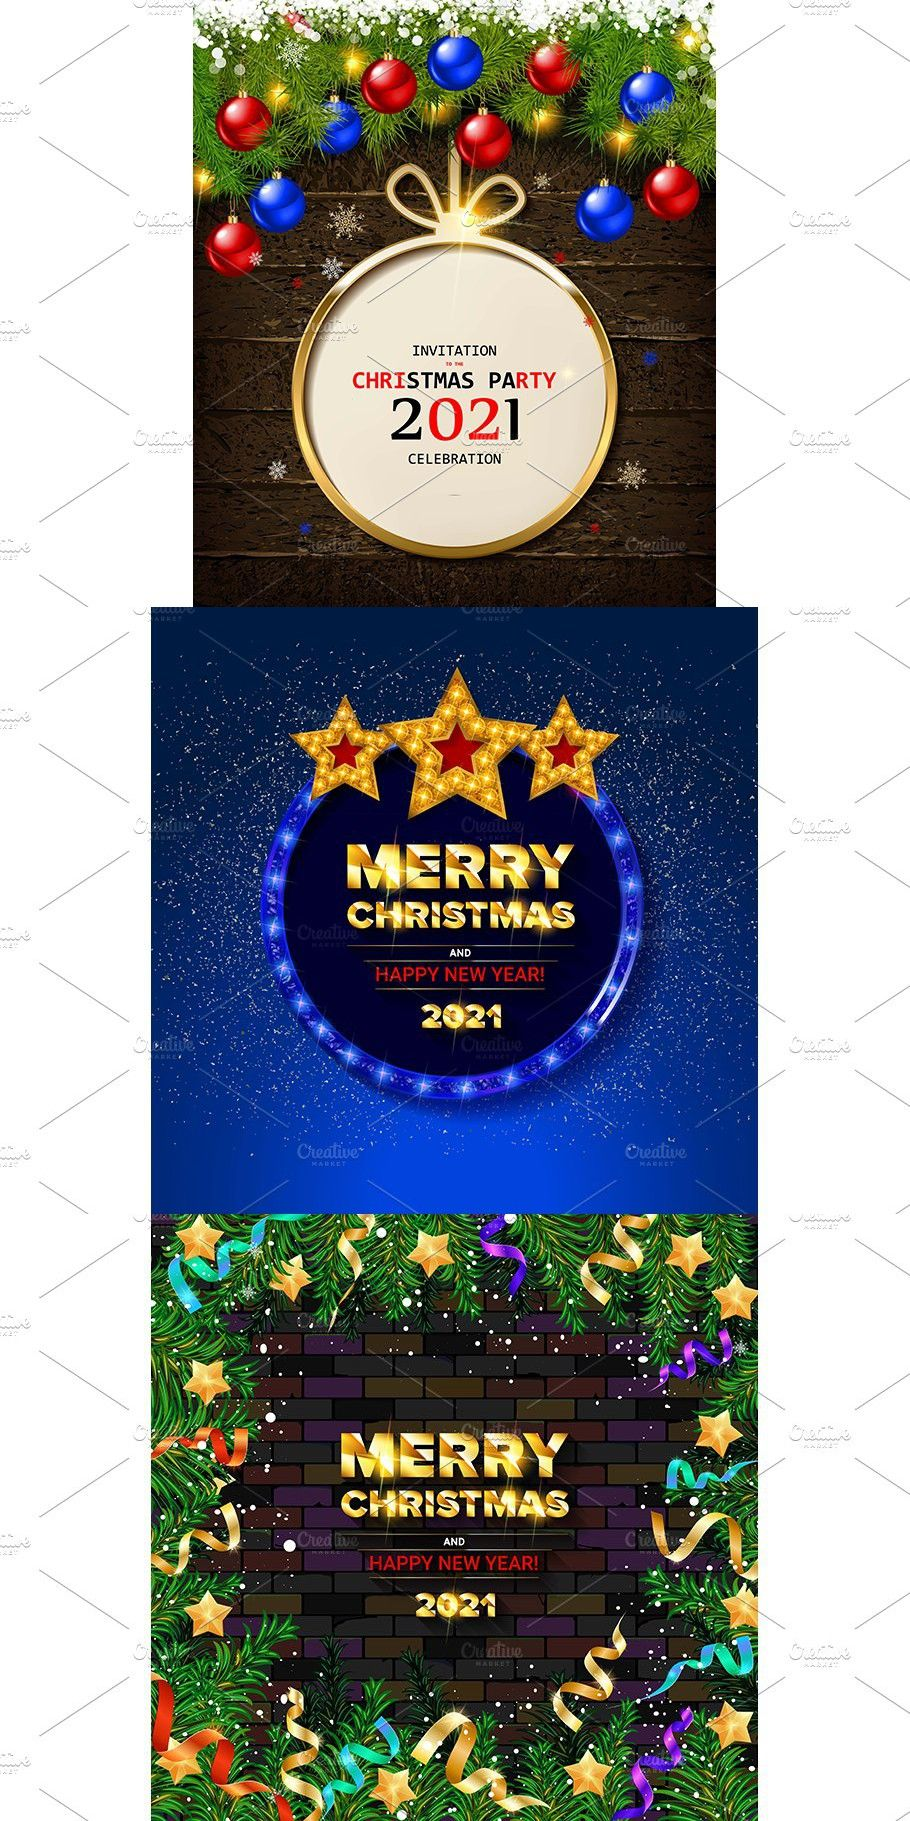 3 Christmas Cards Merry Christmas And Happy New Year Christmas Cards Christmas Party Invitations 2021 happy new year christmas ball